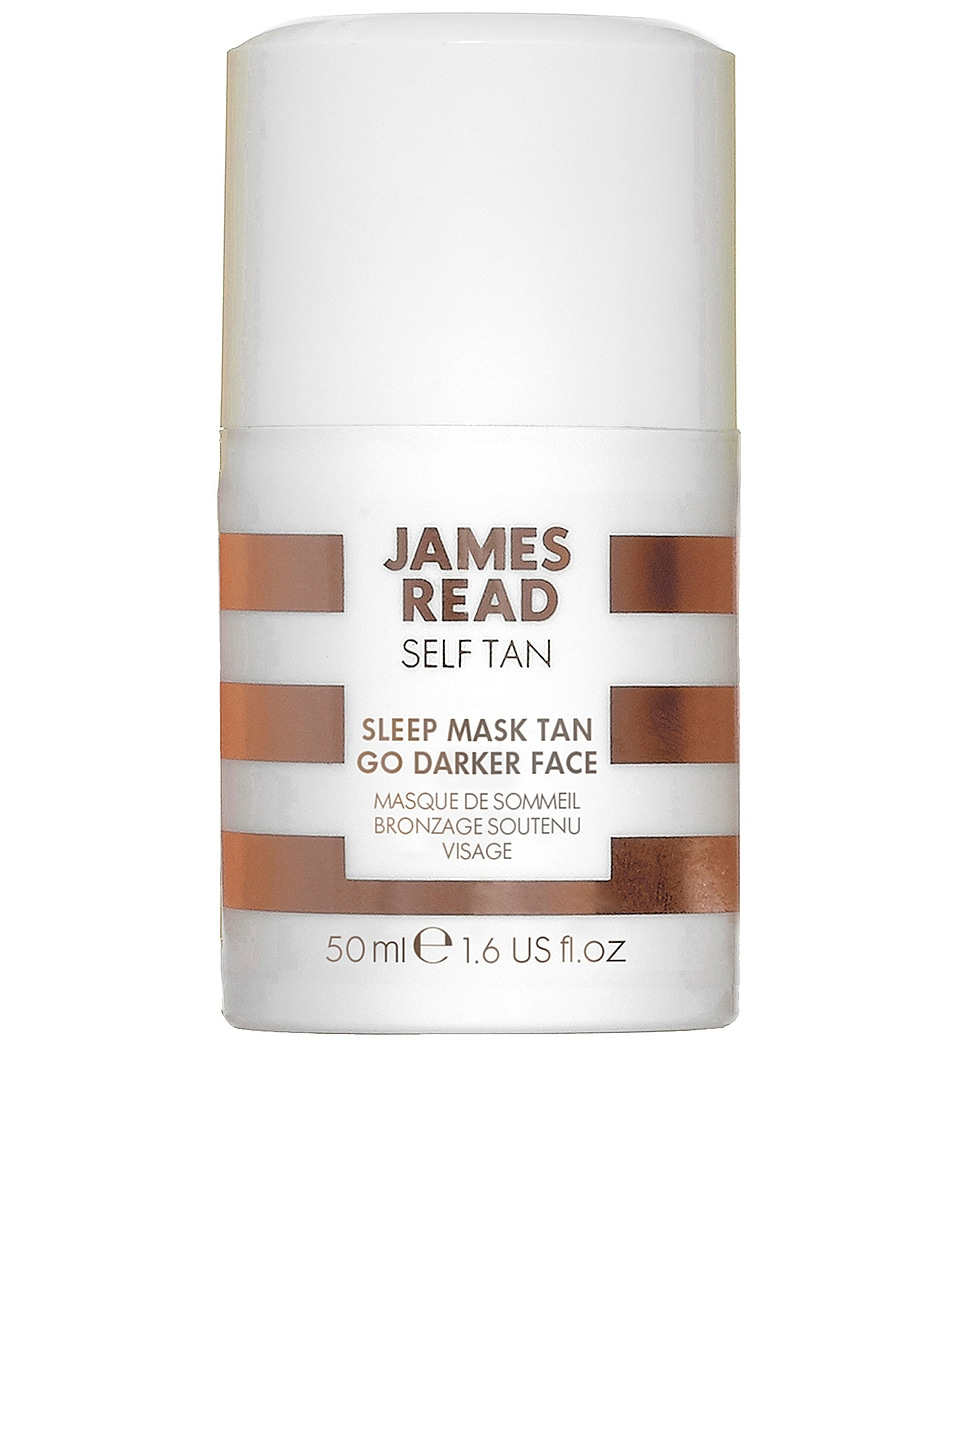 James Read Tan Sleep Mask Tan Face Go Darker